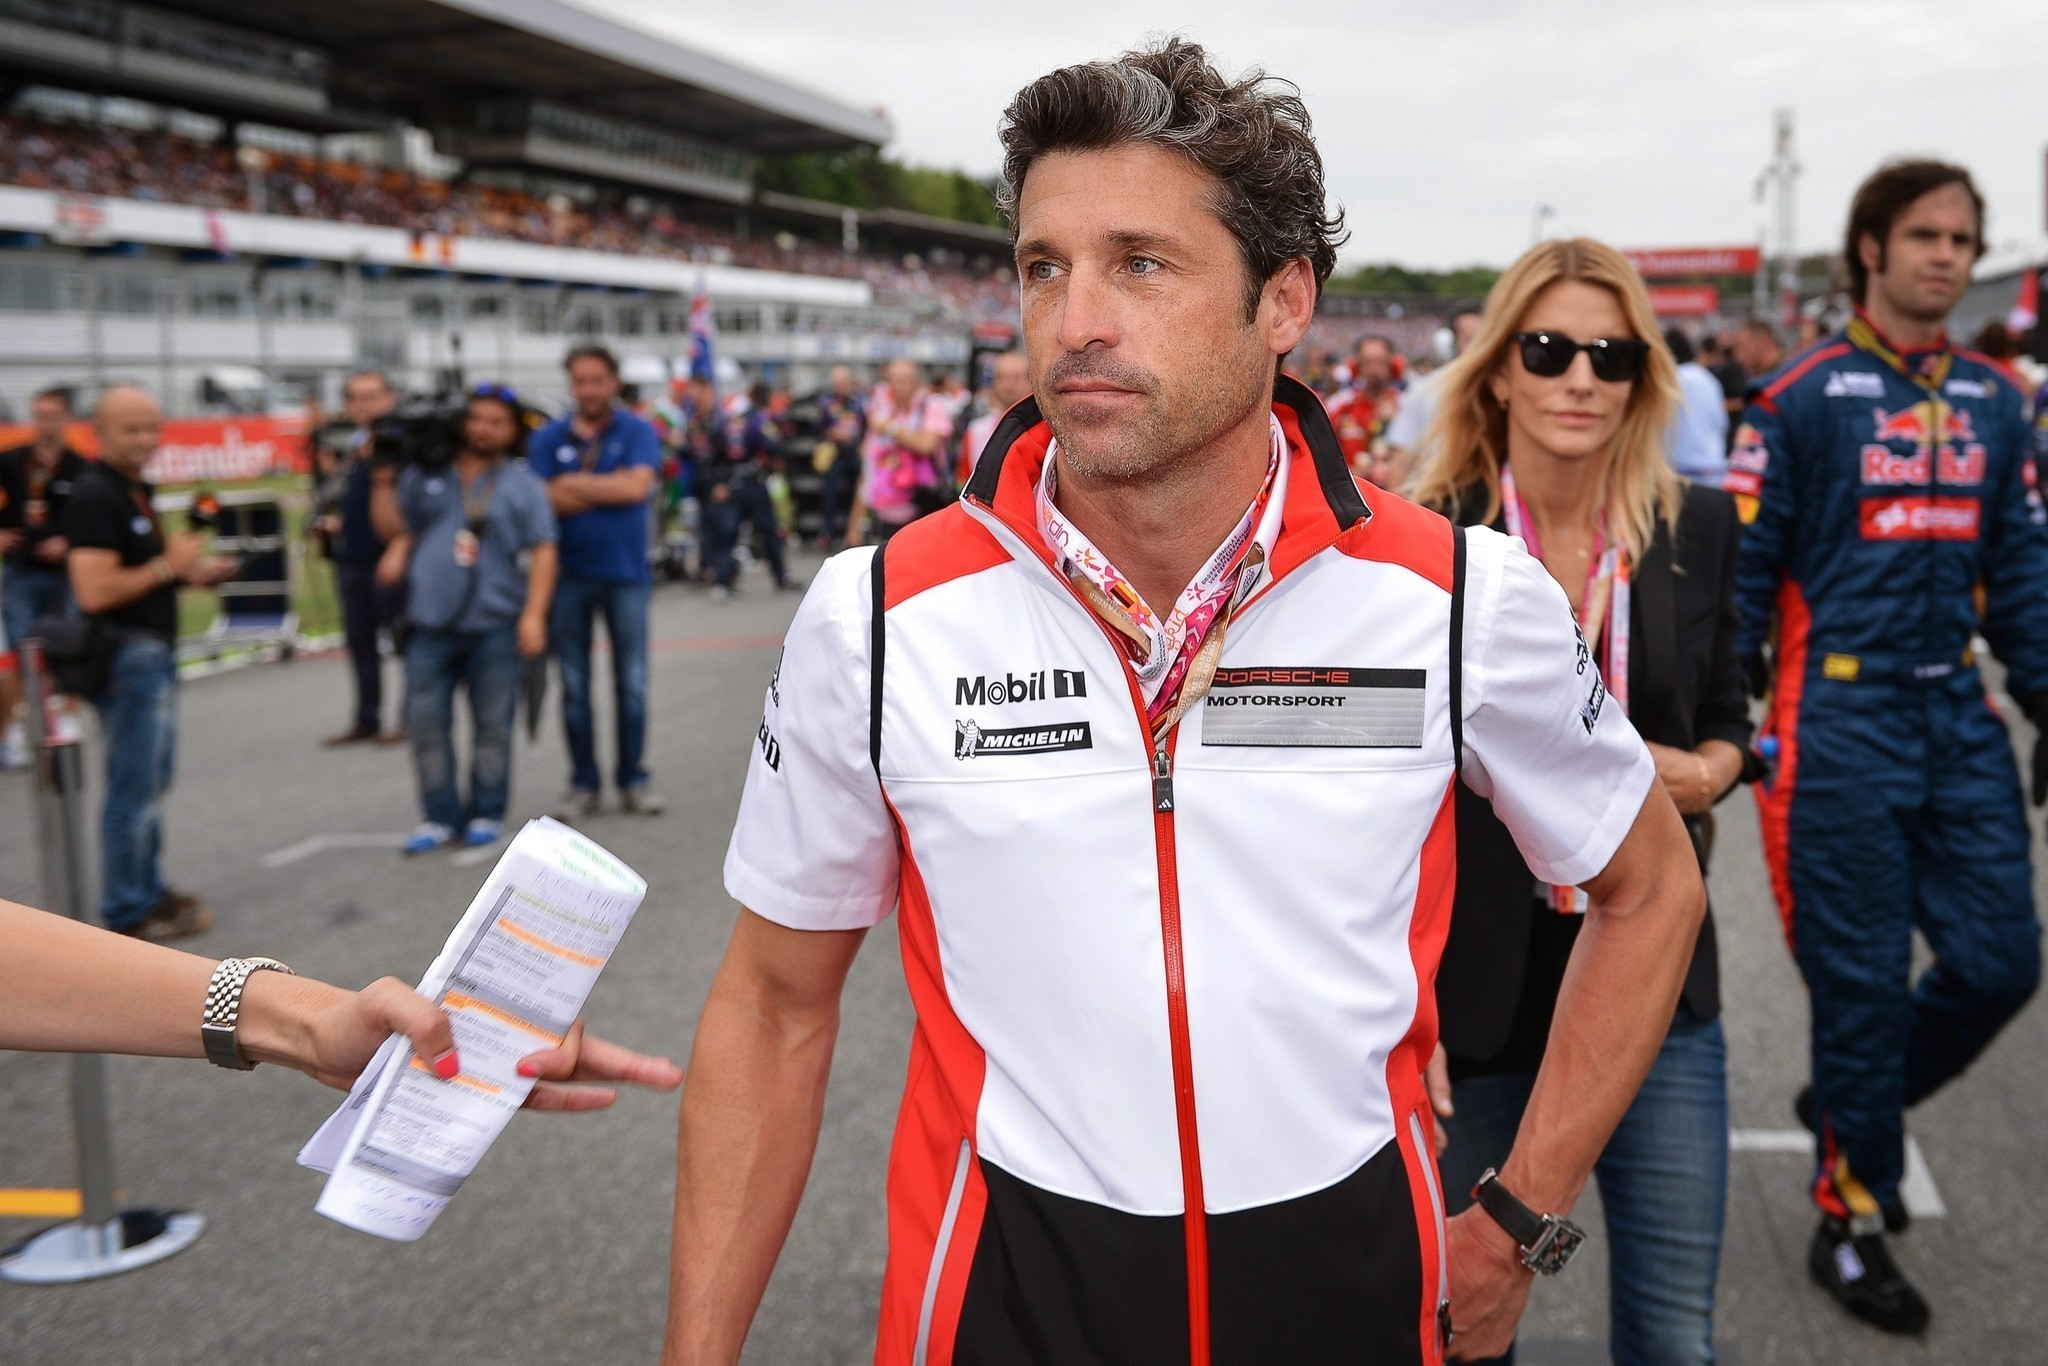 For actor Patrick Dempsey, racing cars is nearly a full-time job